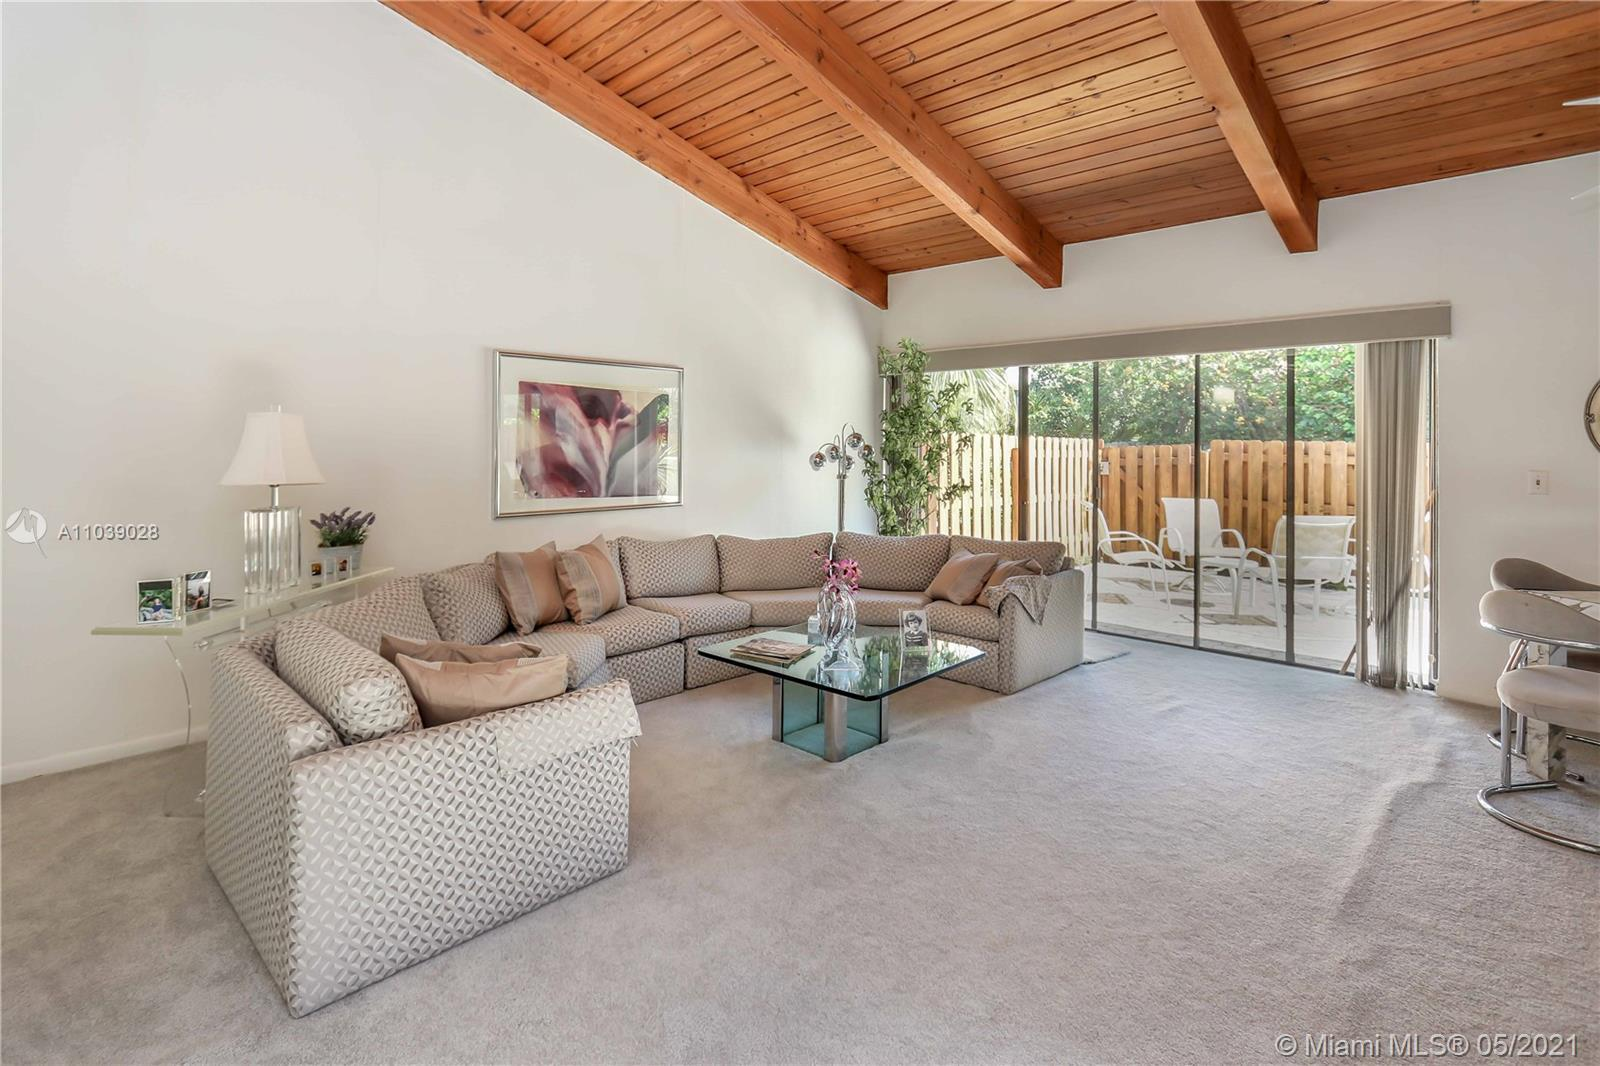 Exquisite 2 BD / 2 BA / One Story Completely Furnished Villa ~ End Unit with 3 Skylights in Sought A